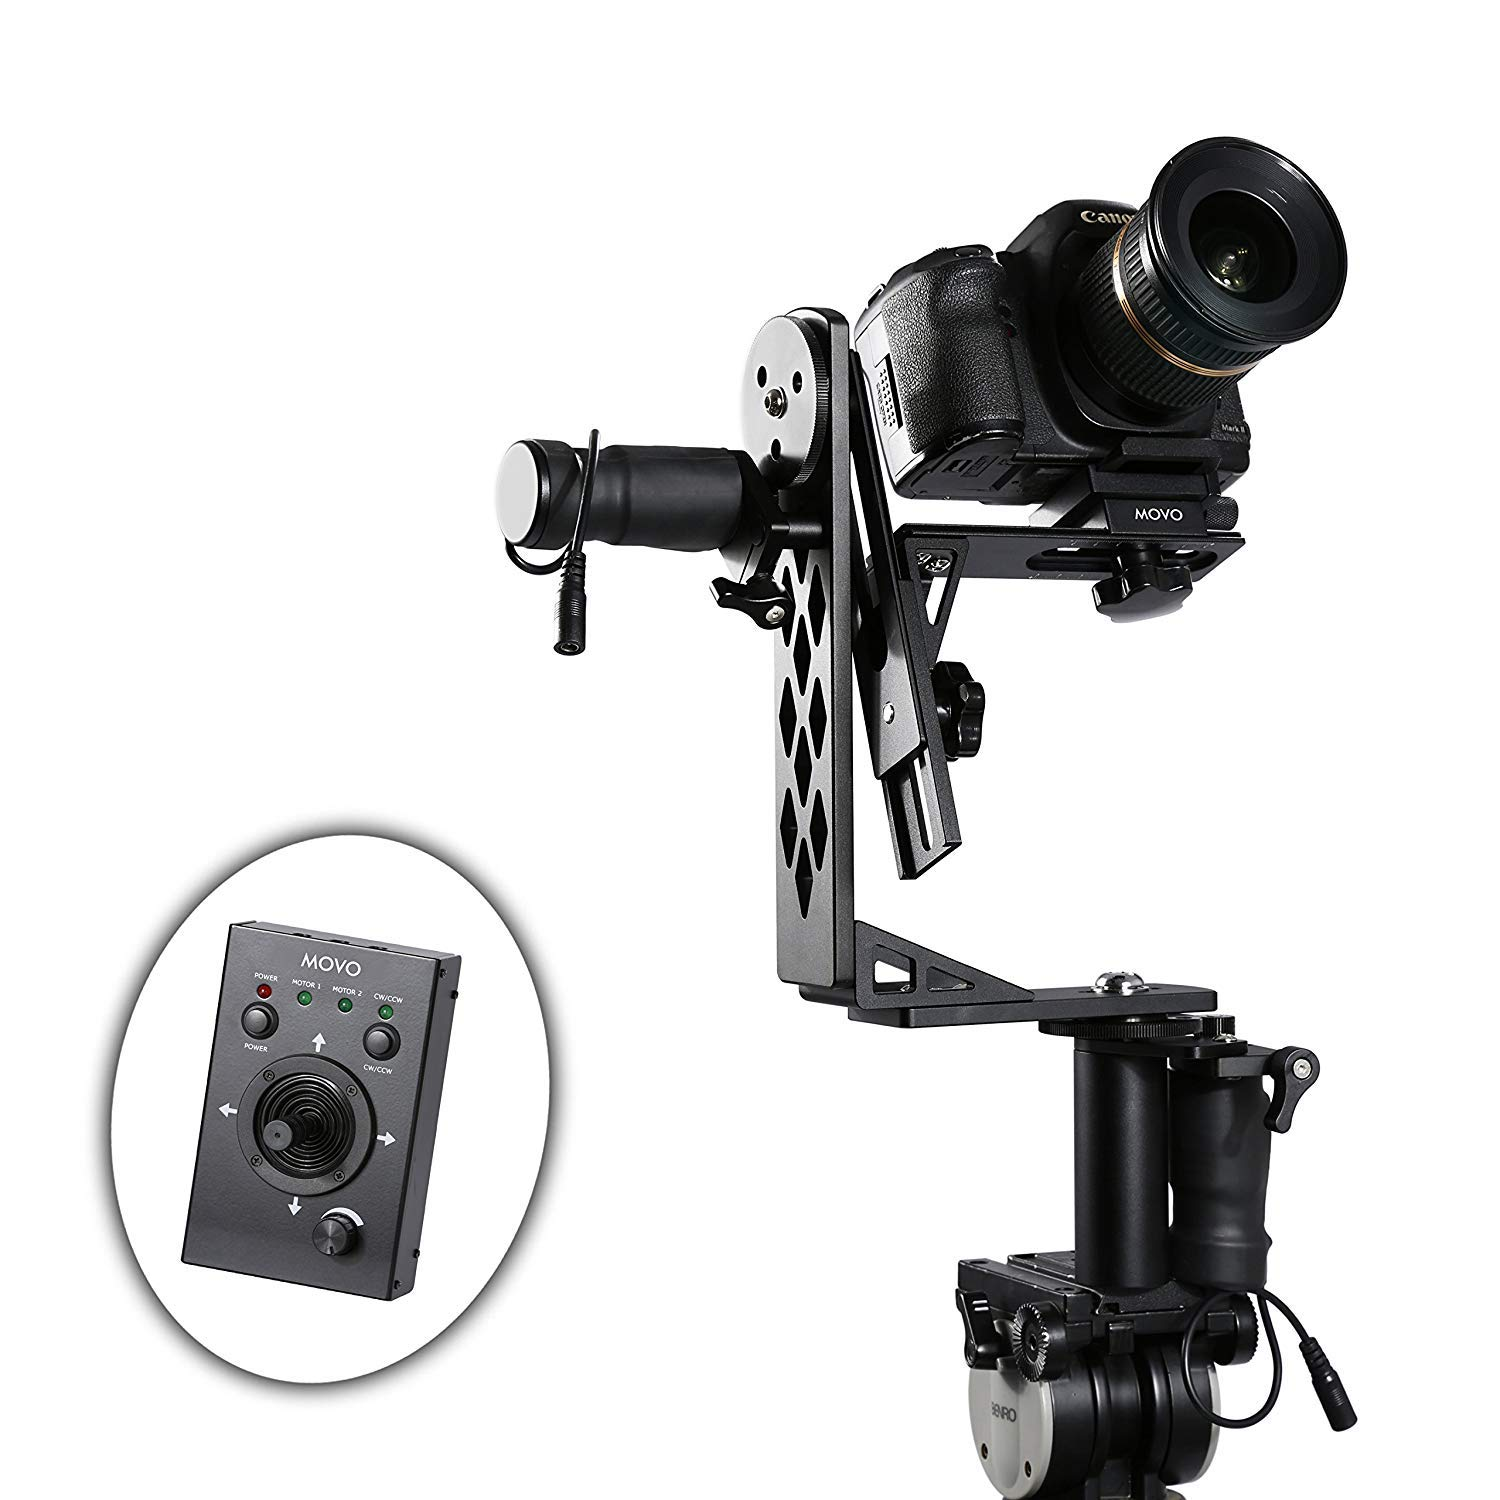 Movo Photo MGB-5 Aluminum Motorized 360° Pan and Tilt Gimbal Head for Tripods and Jibs - Supports Cameras up to 11 LBS by Movo